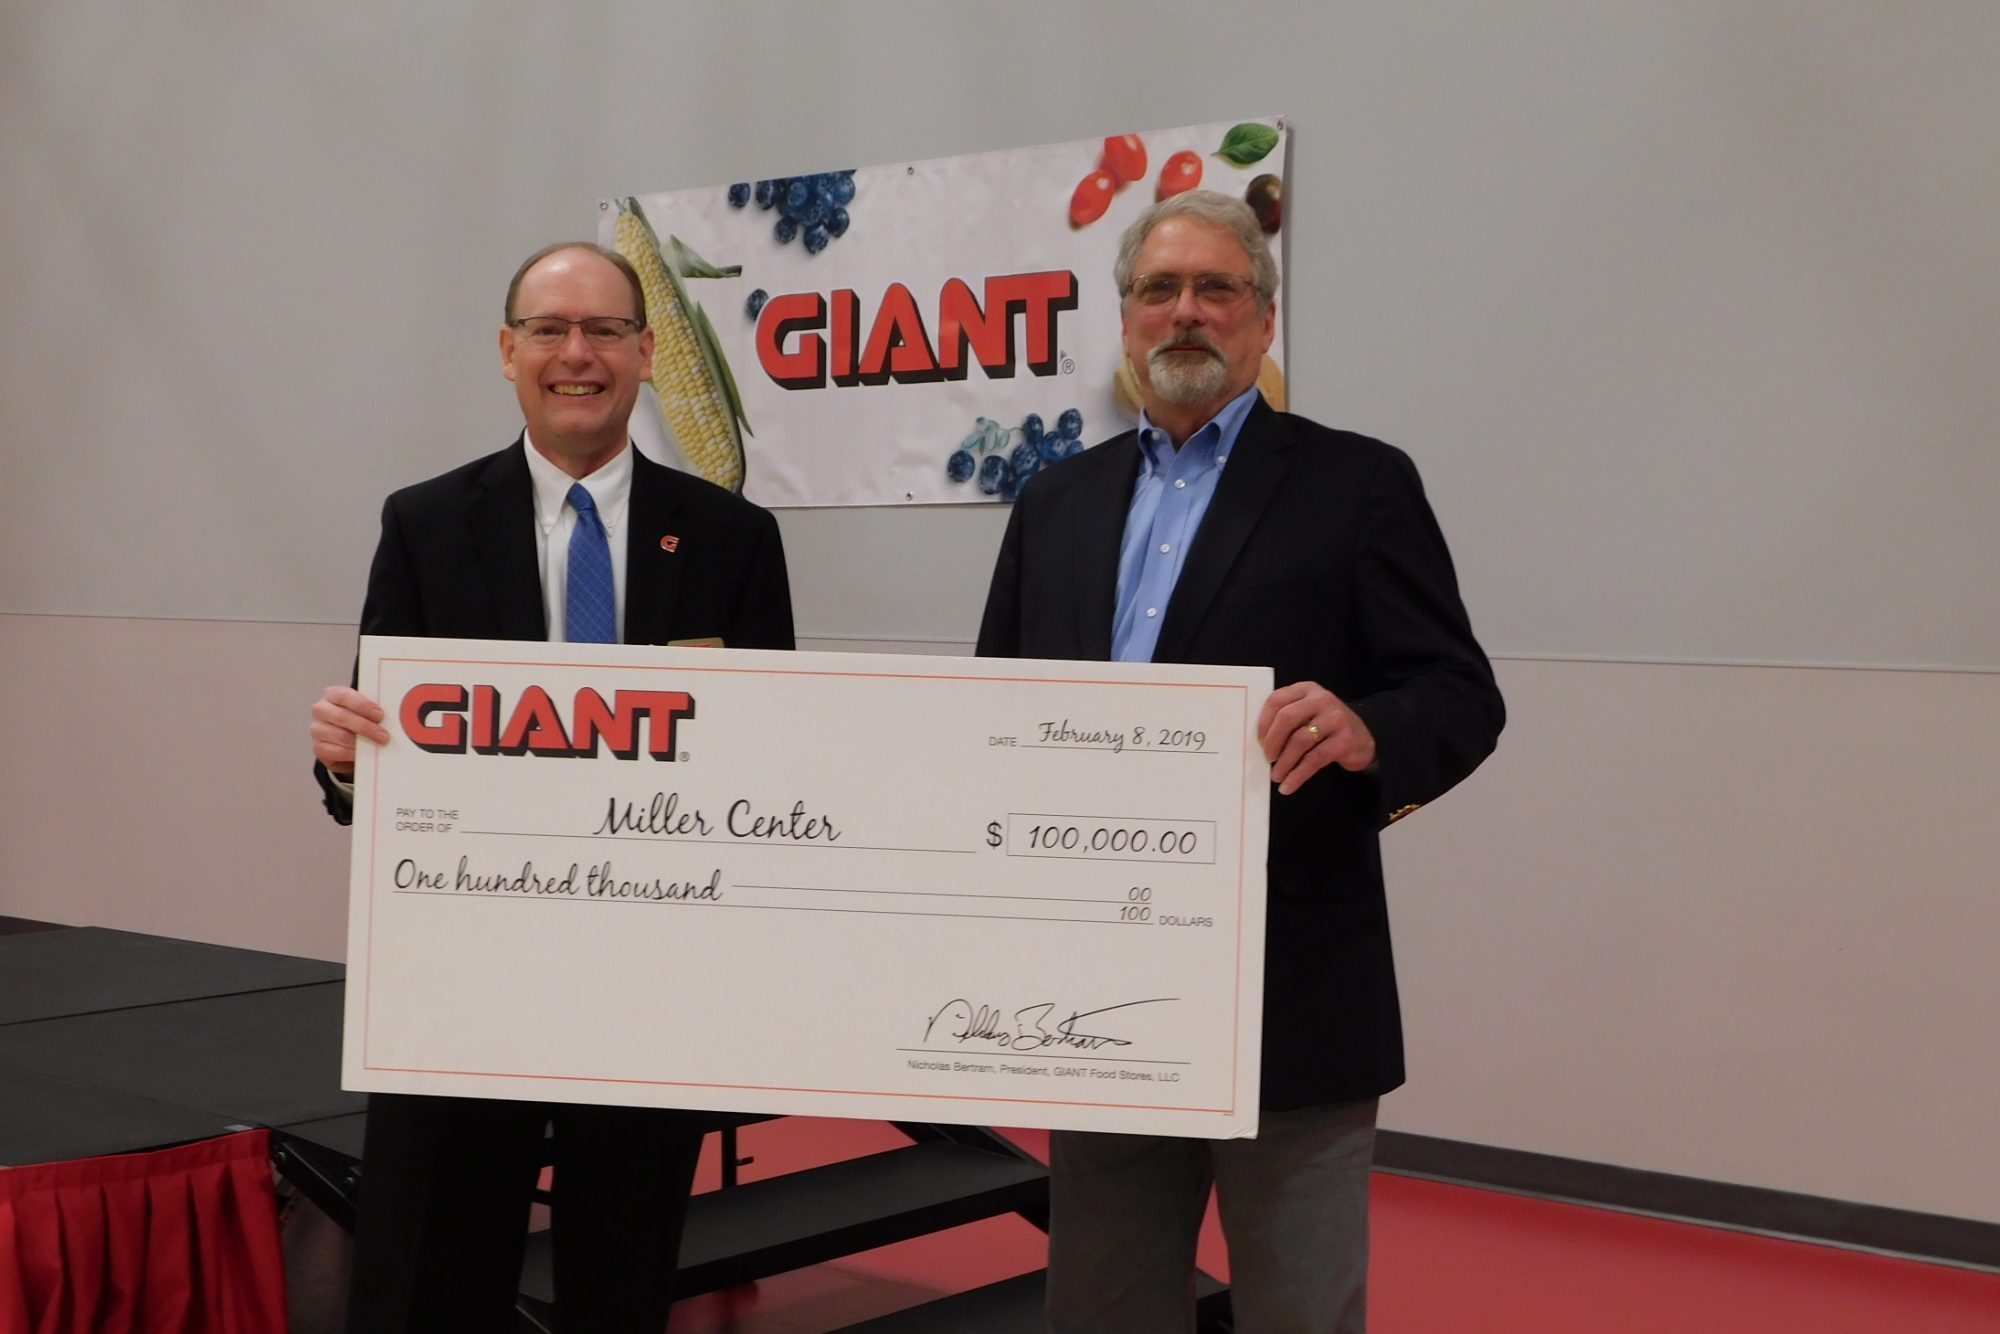 Giant's Chris Brand and The Miller Center's Jim Mathias